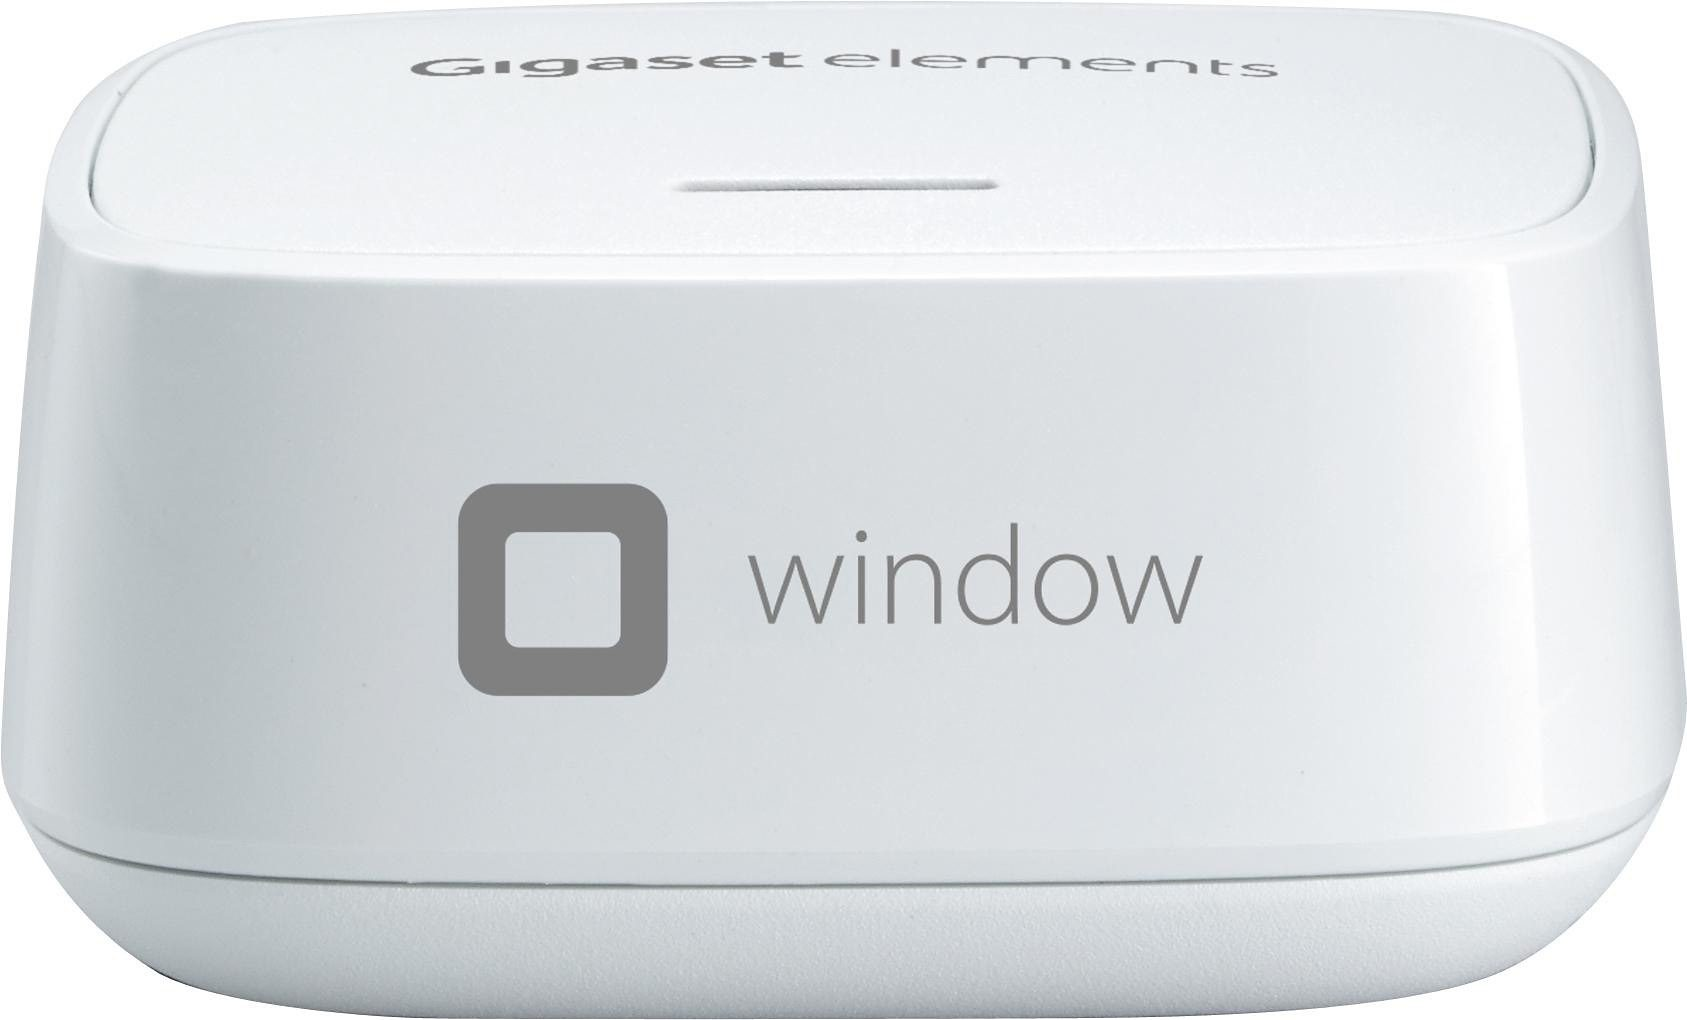 Gigaset Elements window - Fenstersensor